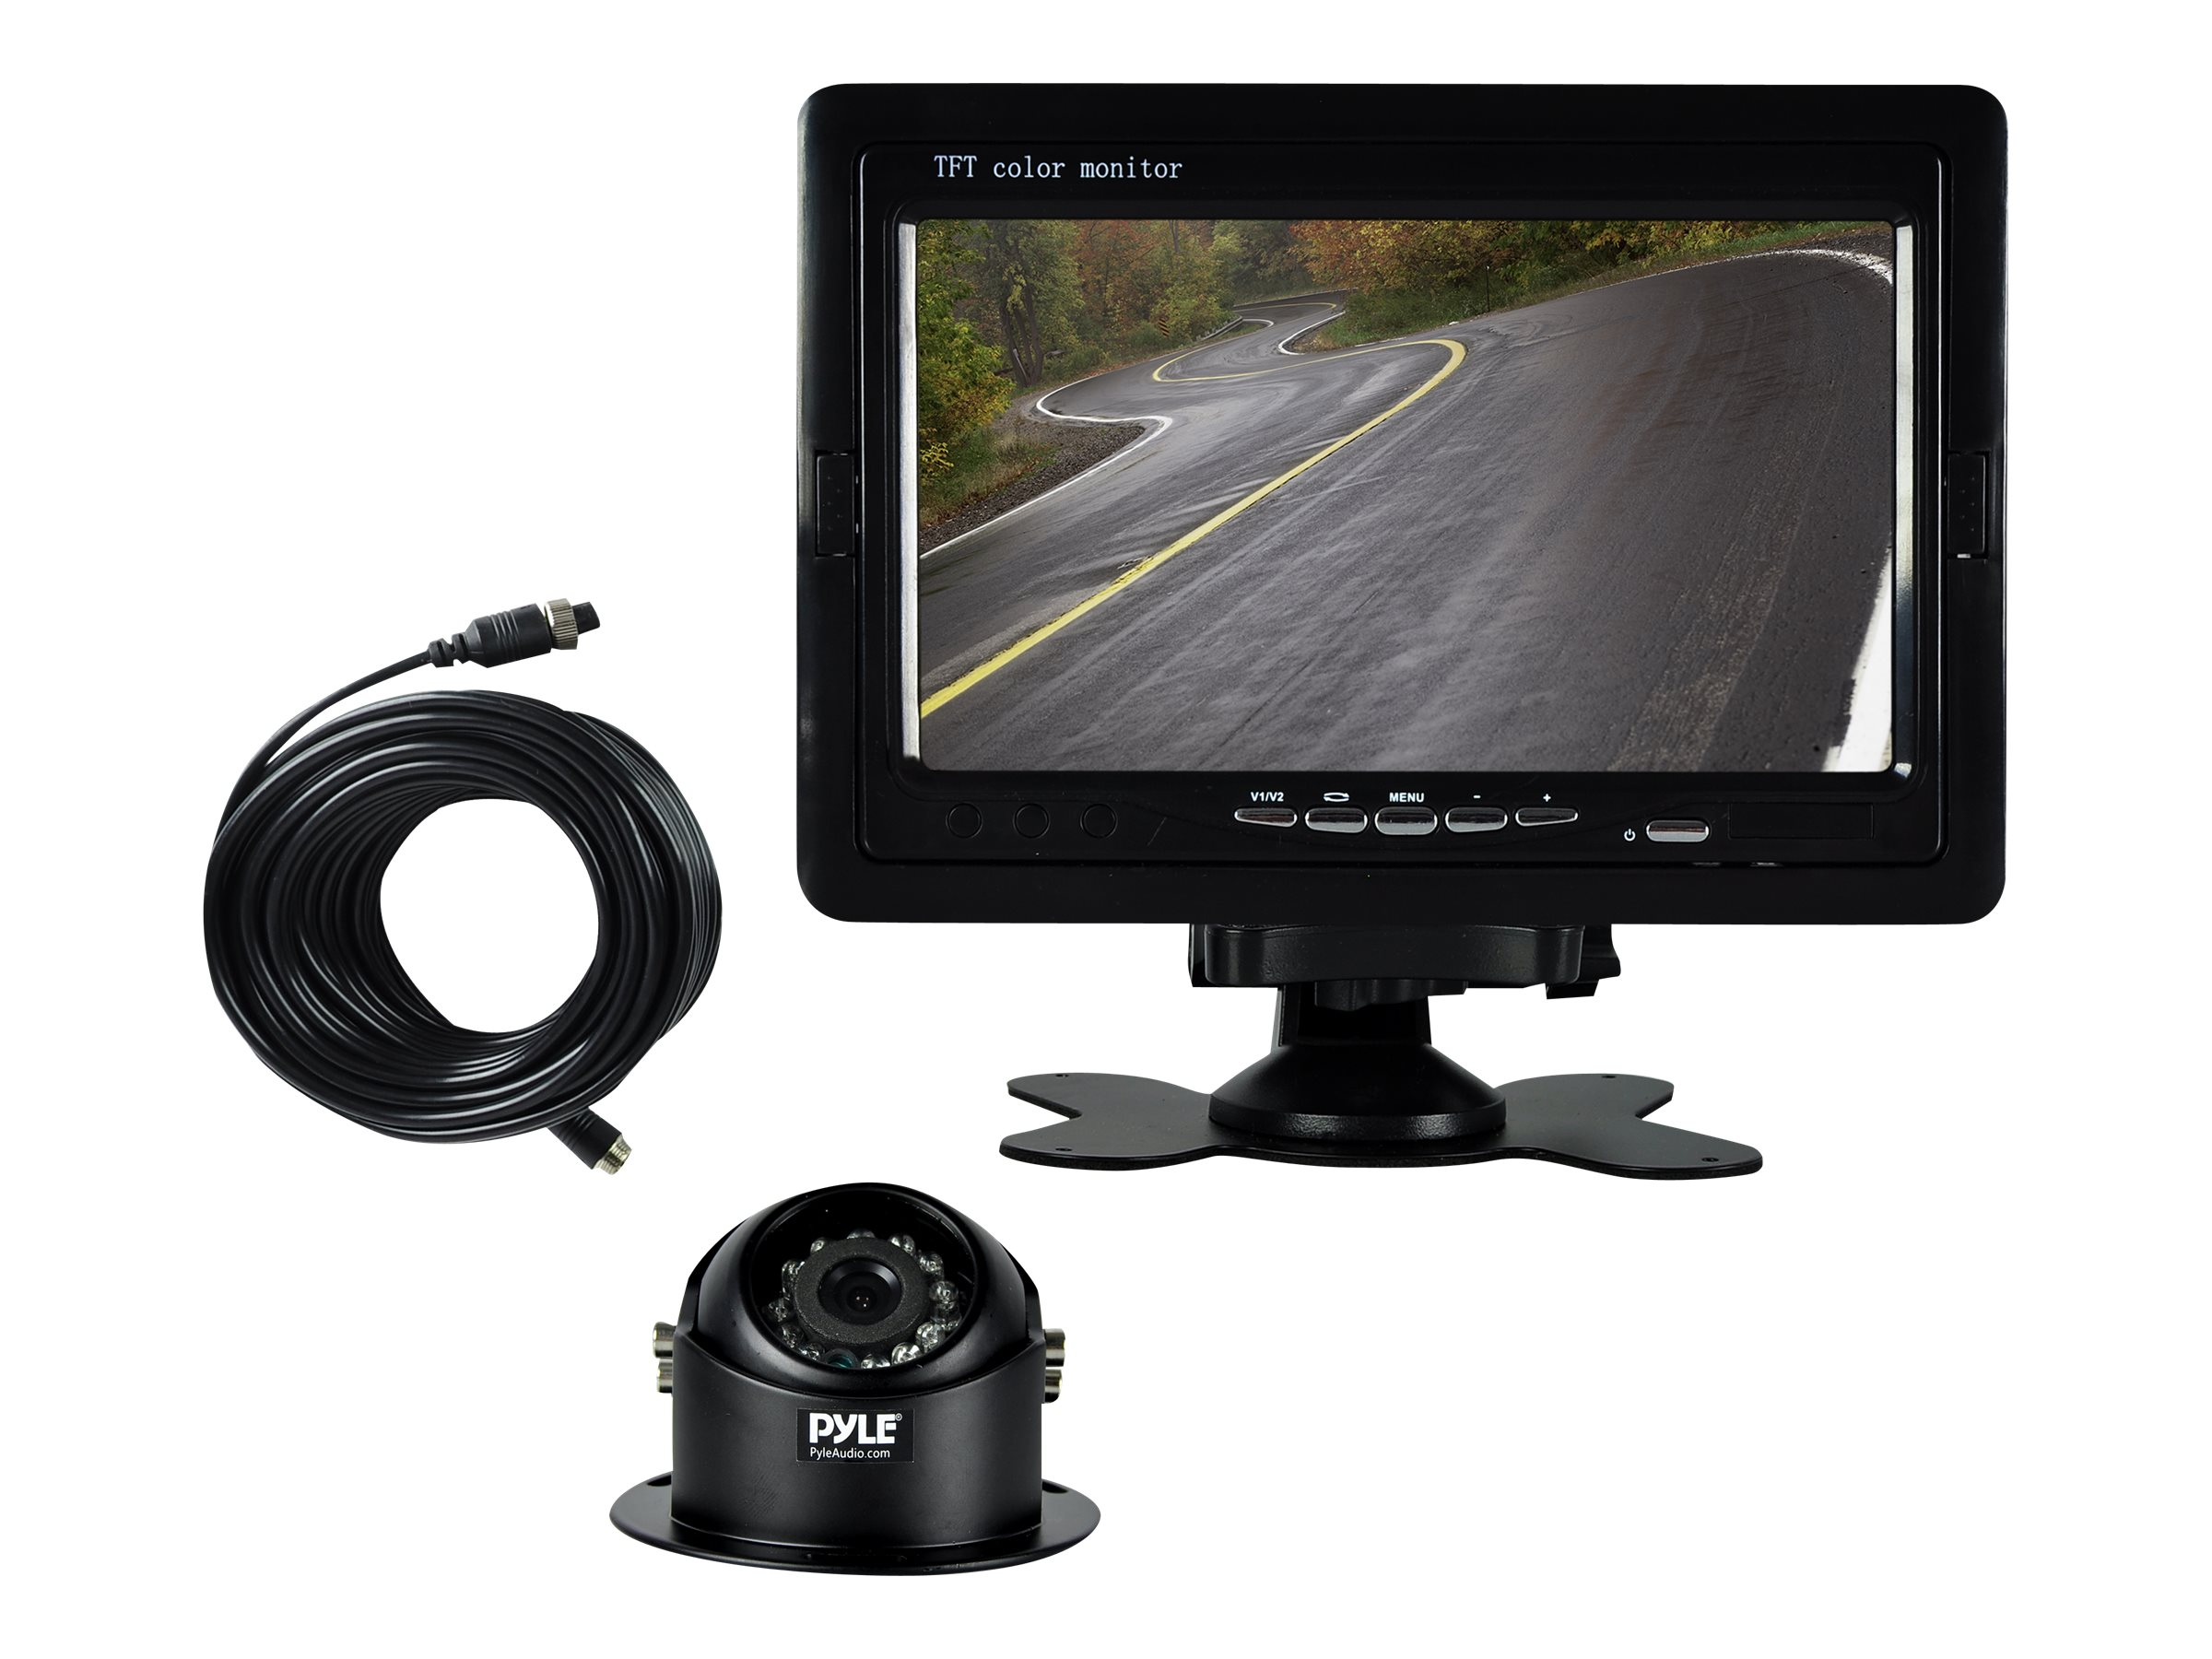 Pyle Rearview Backup Camera & Video Monitor System Kit 7, PLCMTR70